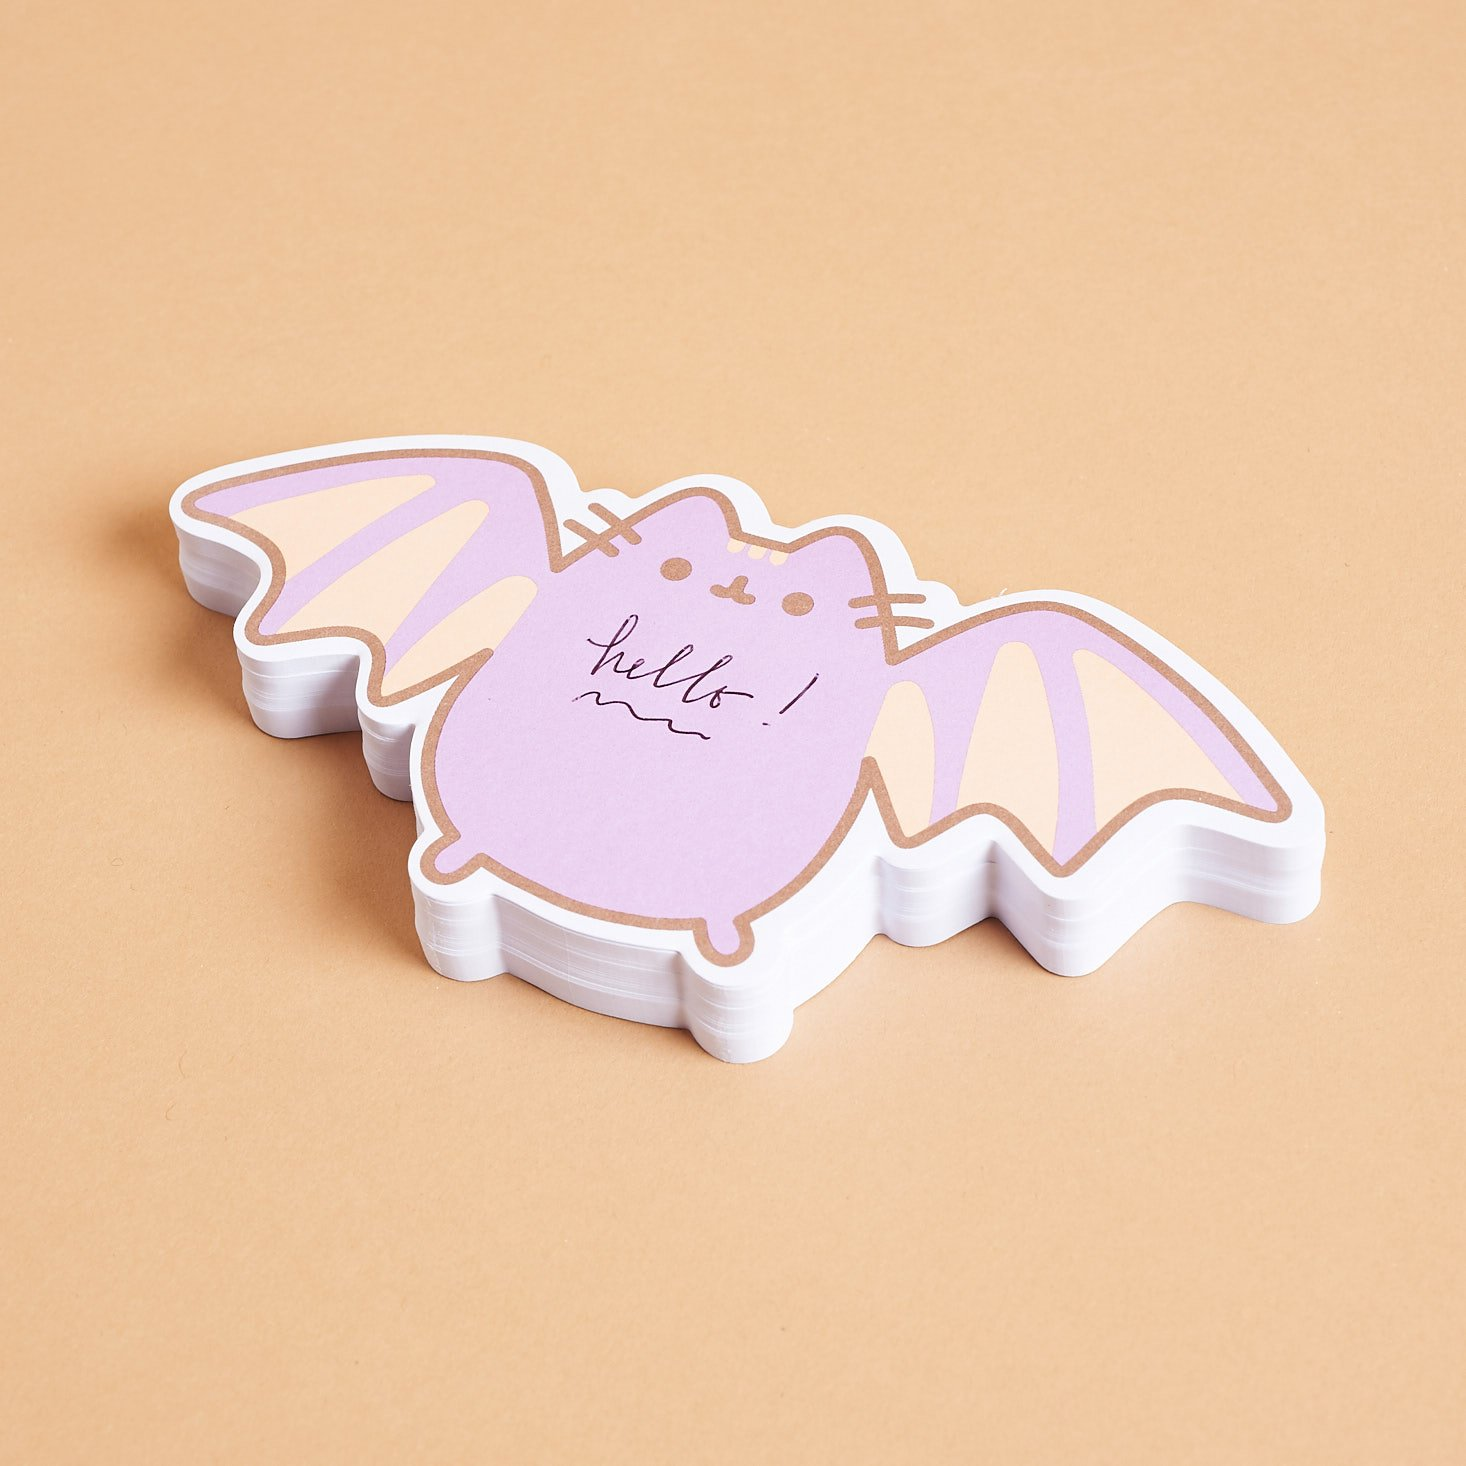 Pusheen Bat sticky notes